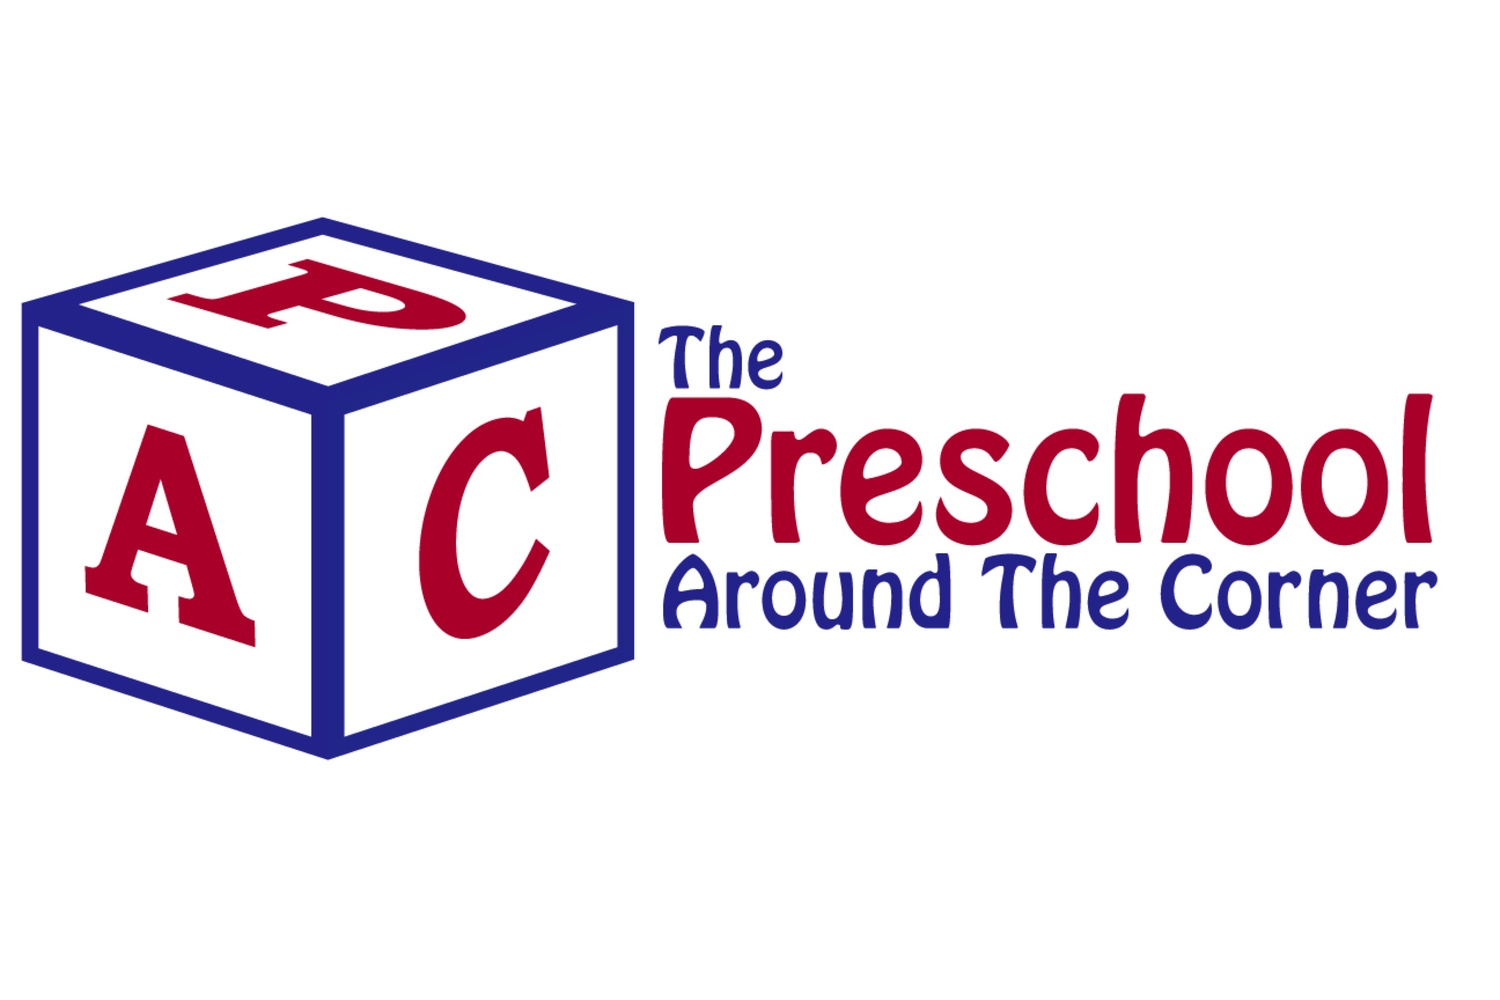 The Preschool Around the Corner